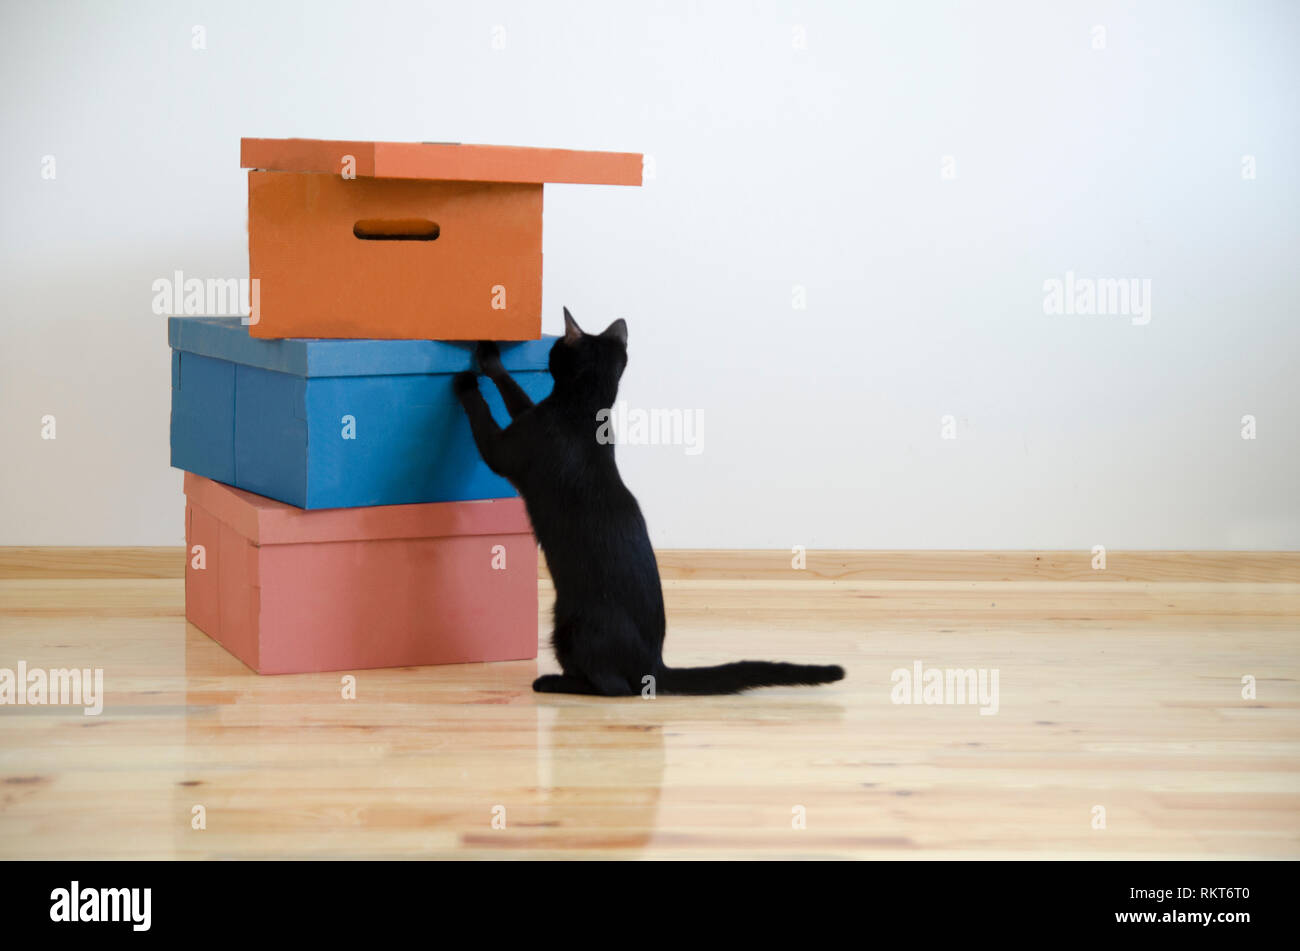 Moving In New Home Concept Cardboard Boxes And Black Cat In